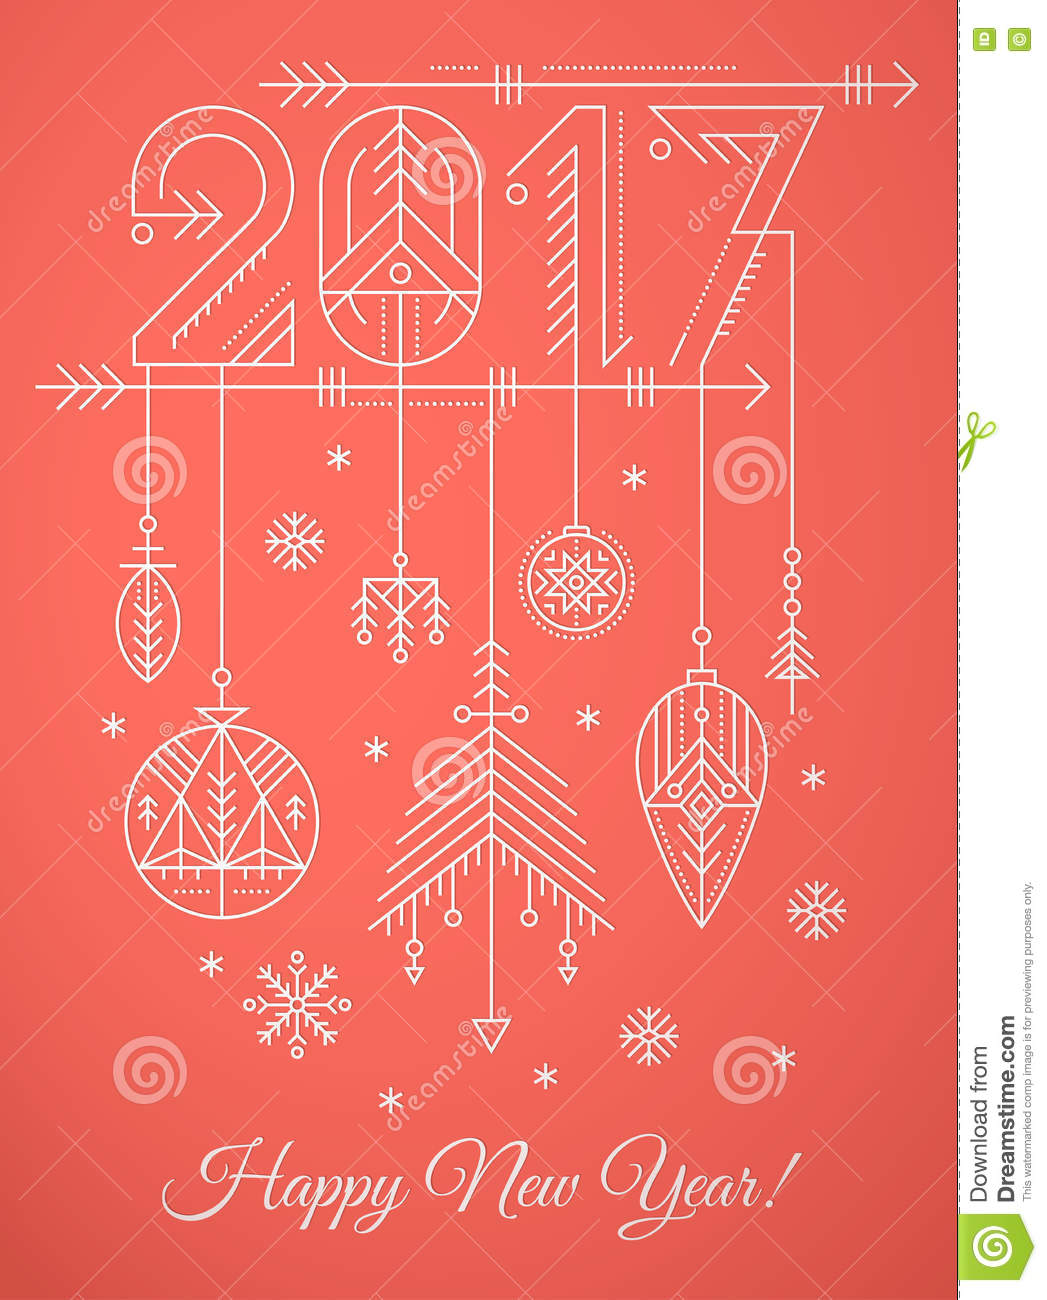 New Year Greeting Card Template With 2017 Sign And Decorations – New Year Greeting Card Template